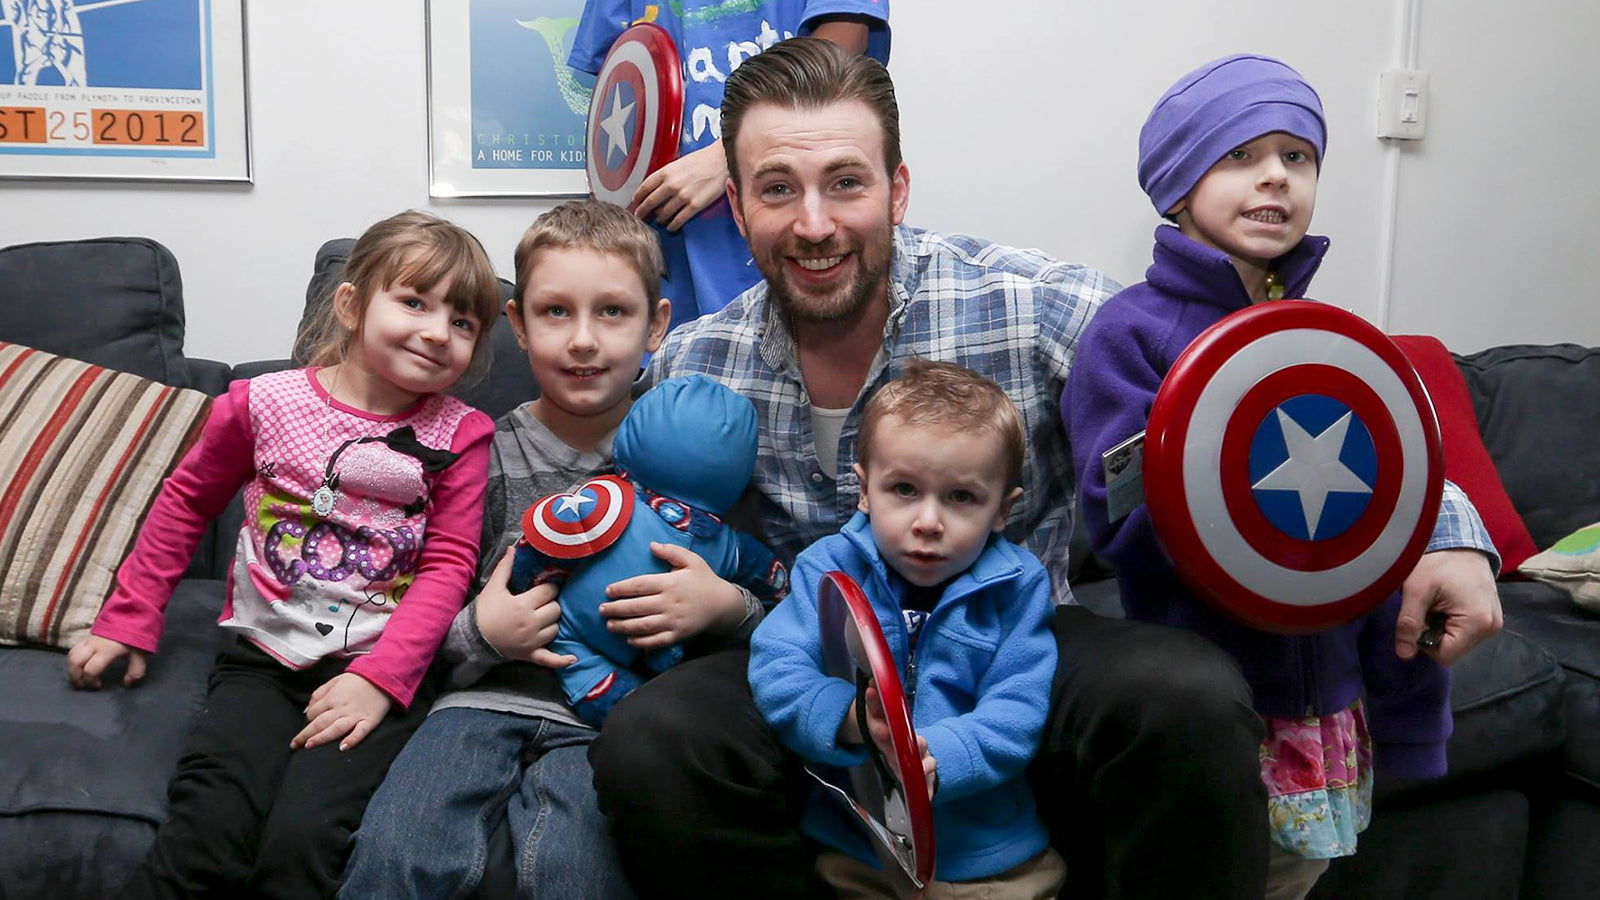 Assemble with Chris Evans at the Avengers: Endgame® Premiere